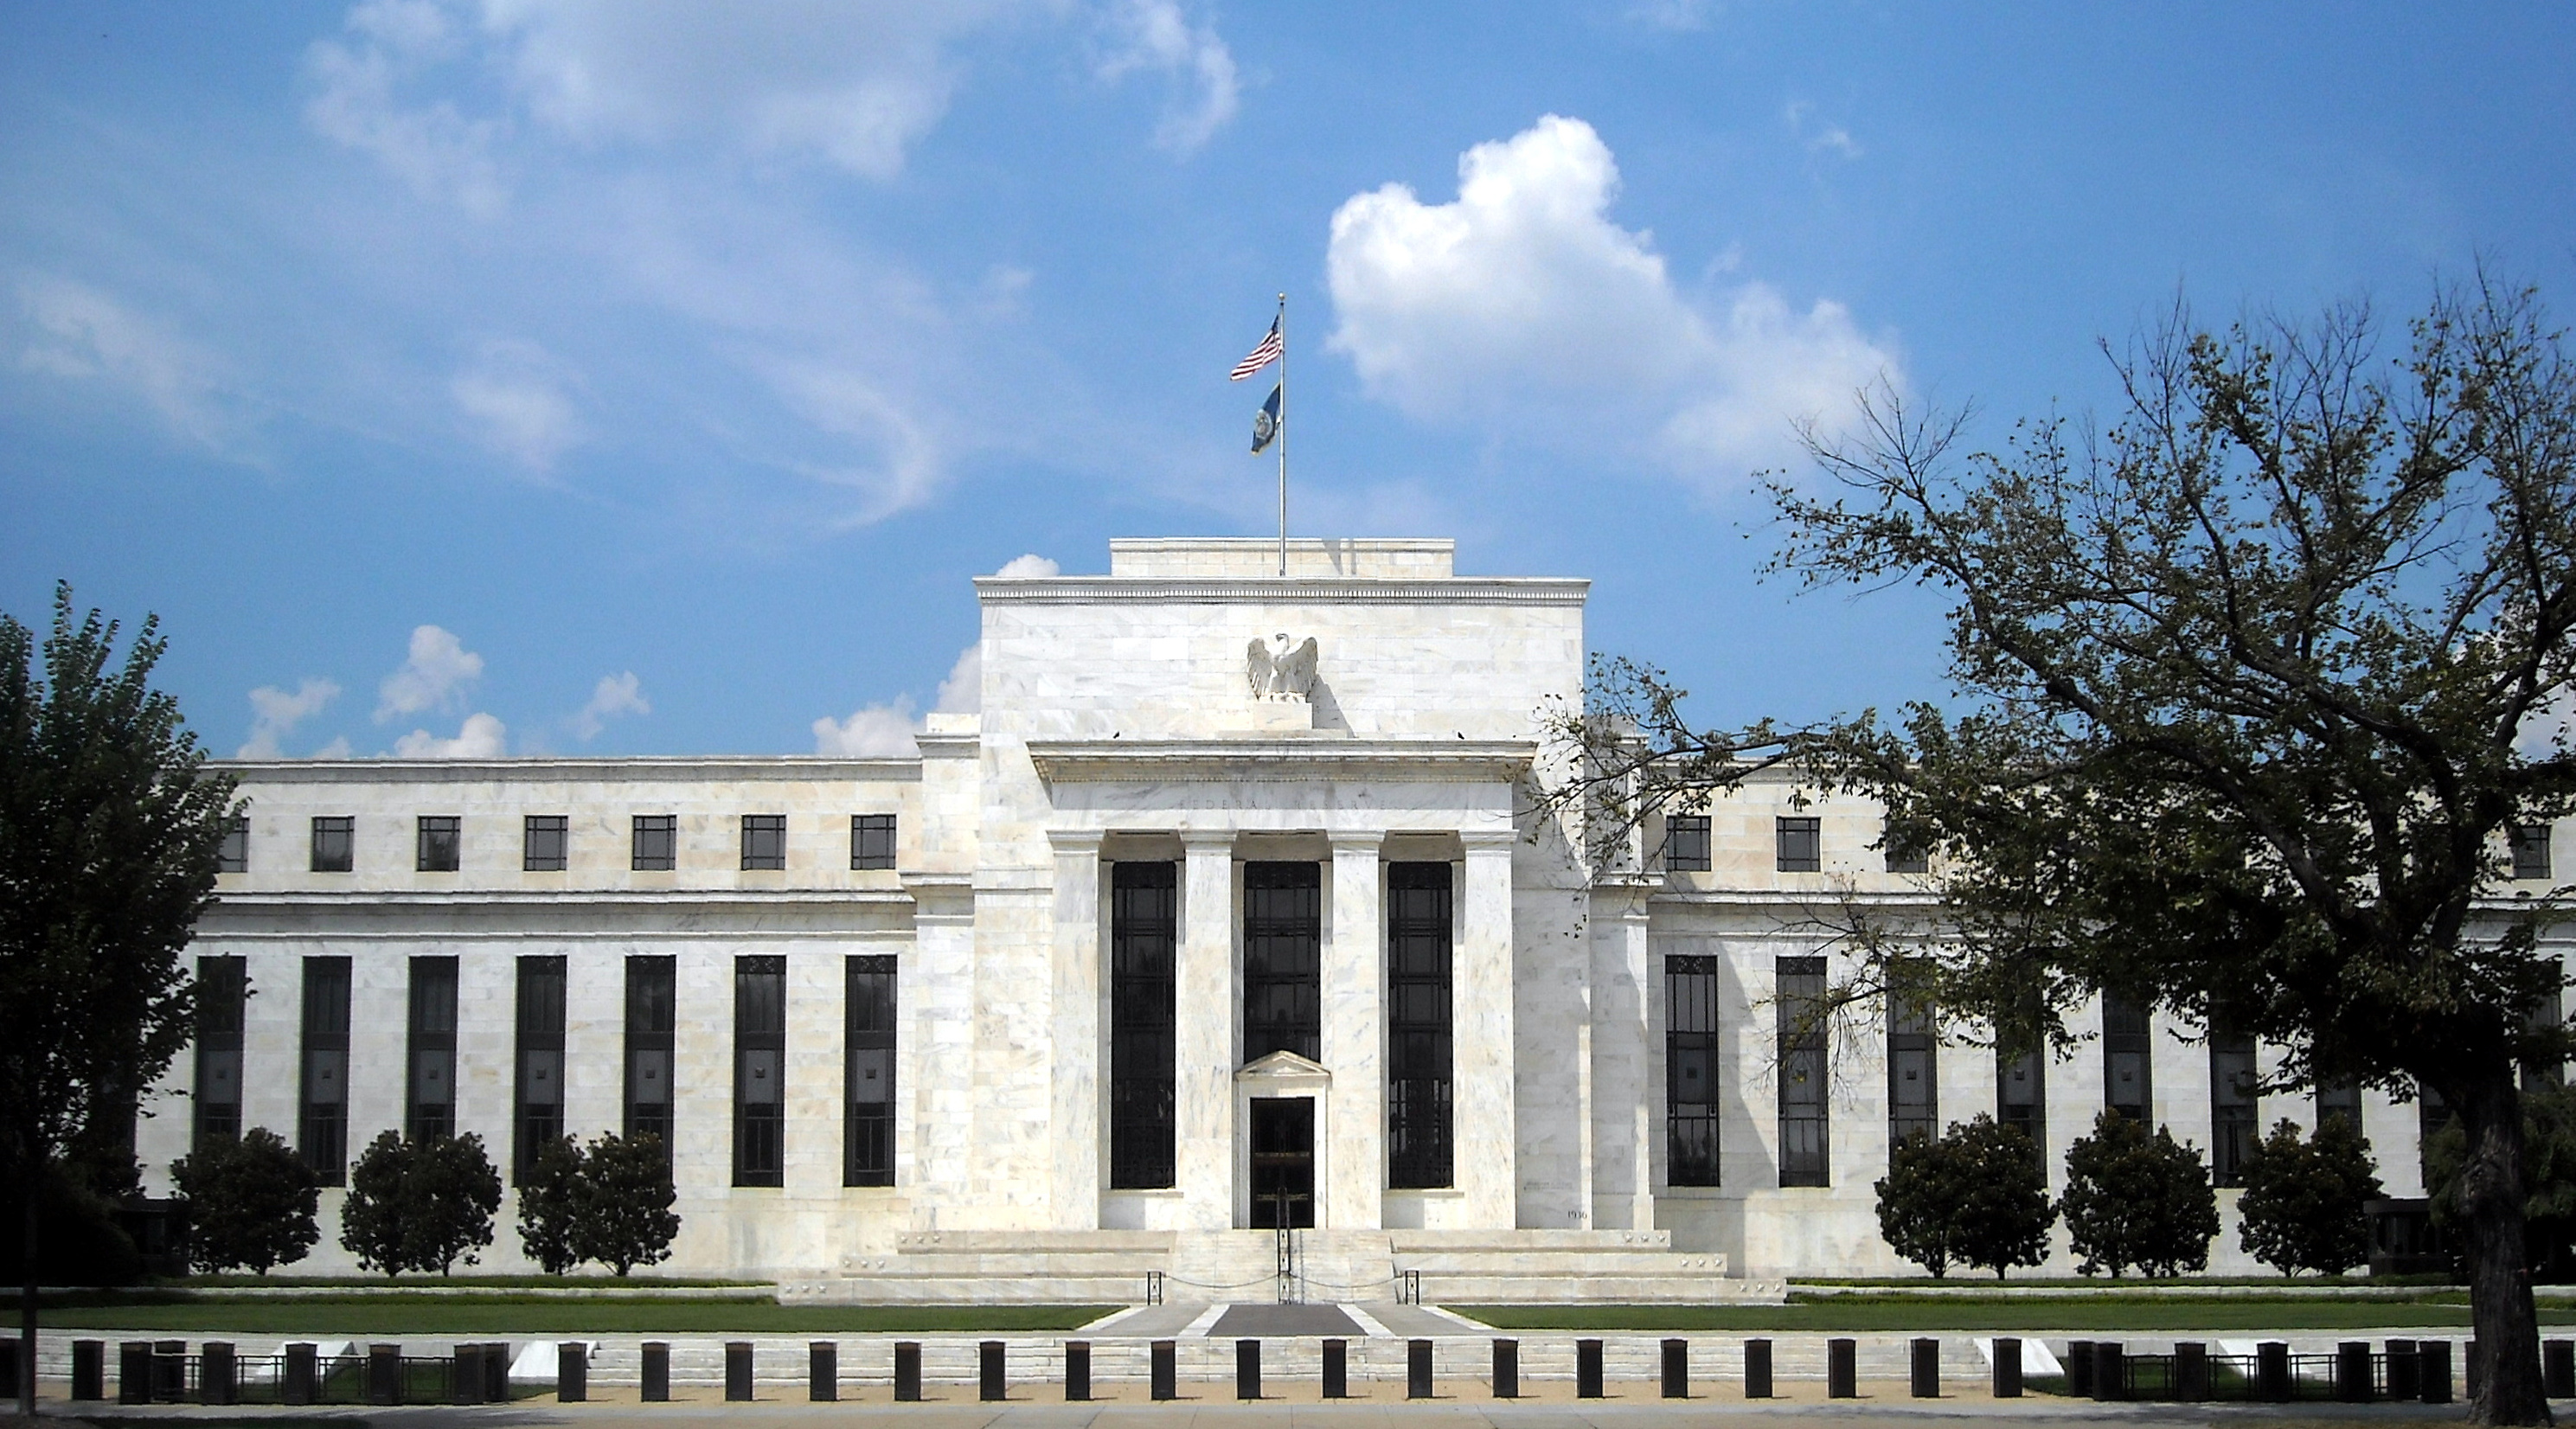 Federal Reserve under attack by hackers